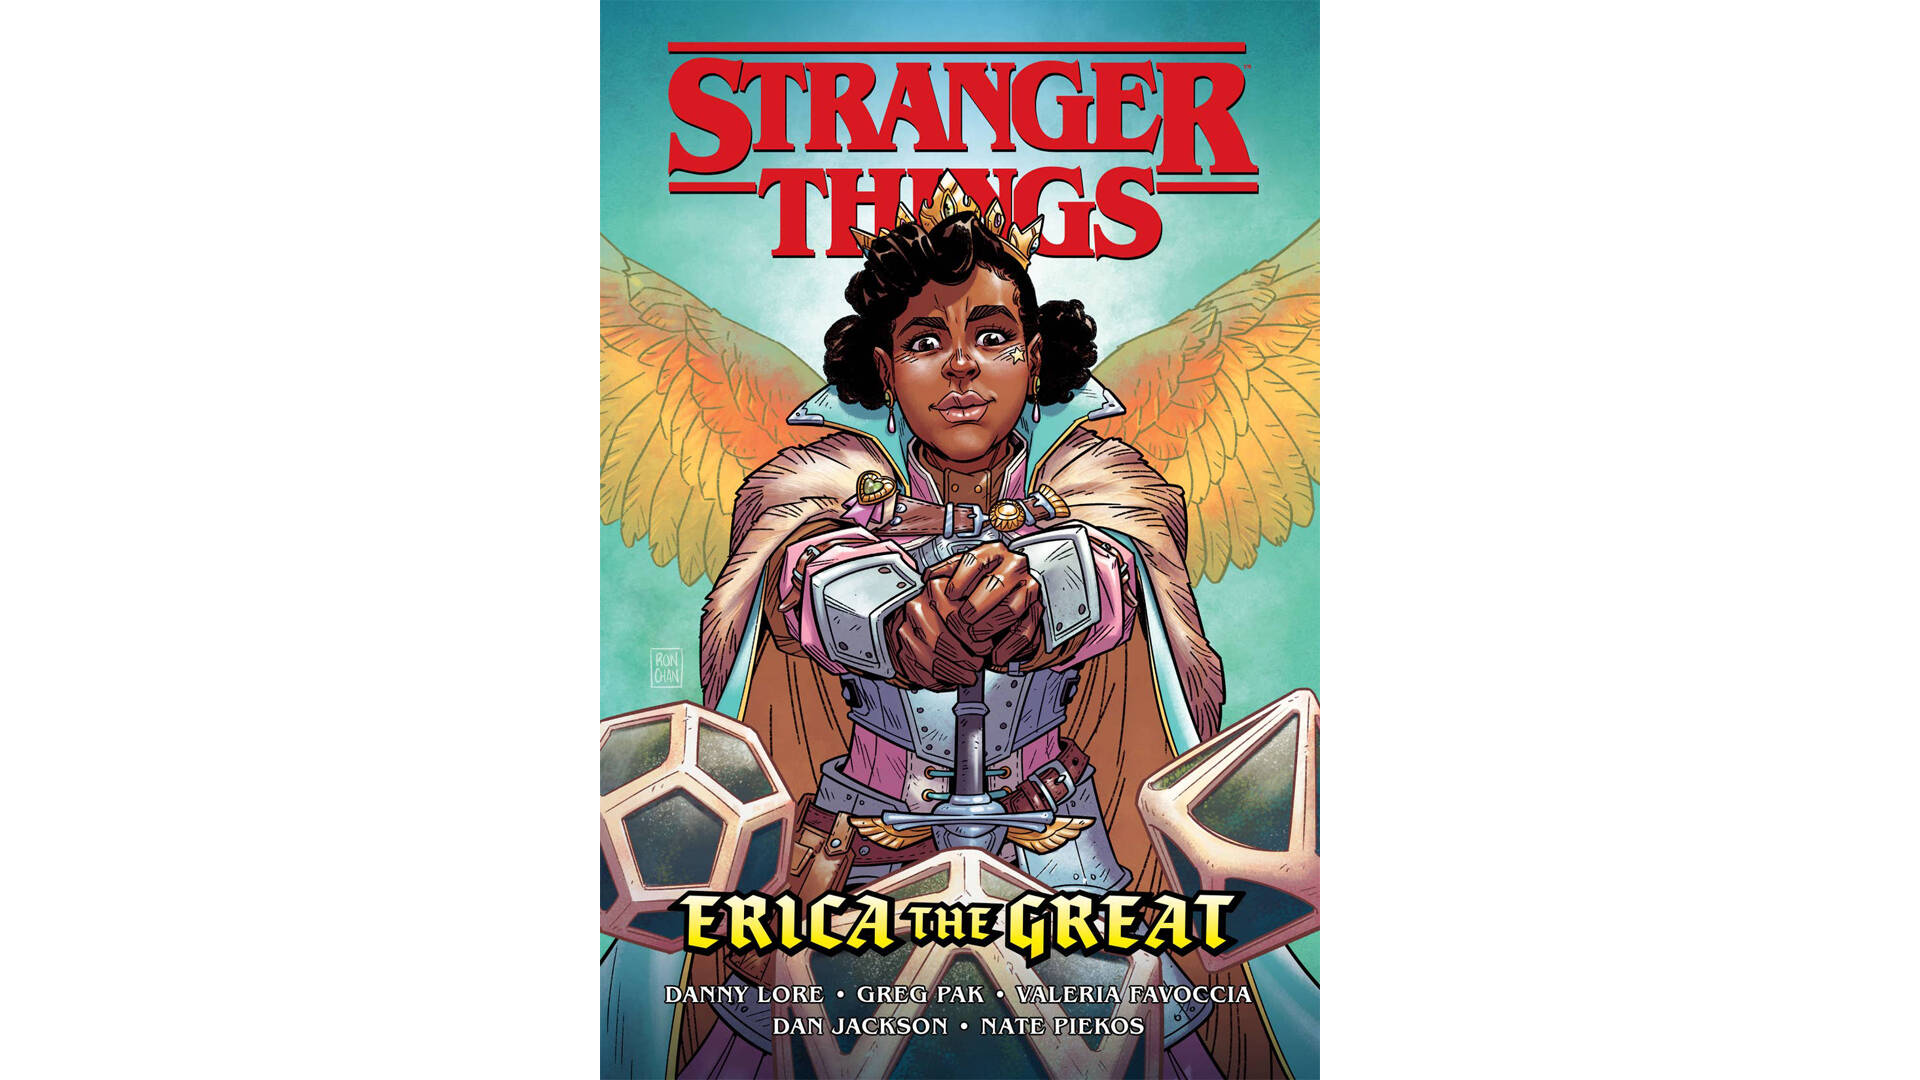 Stranger Things Erica the Great